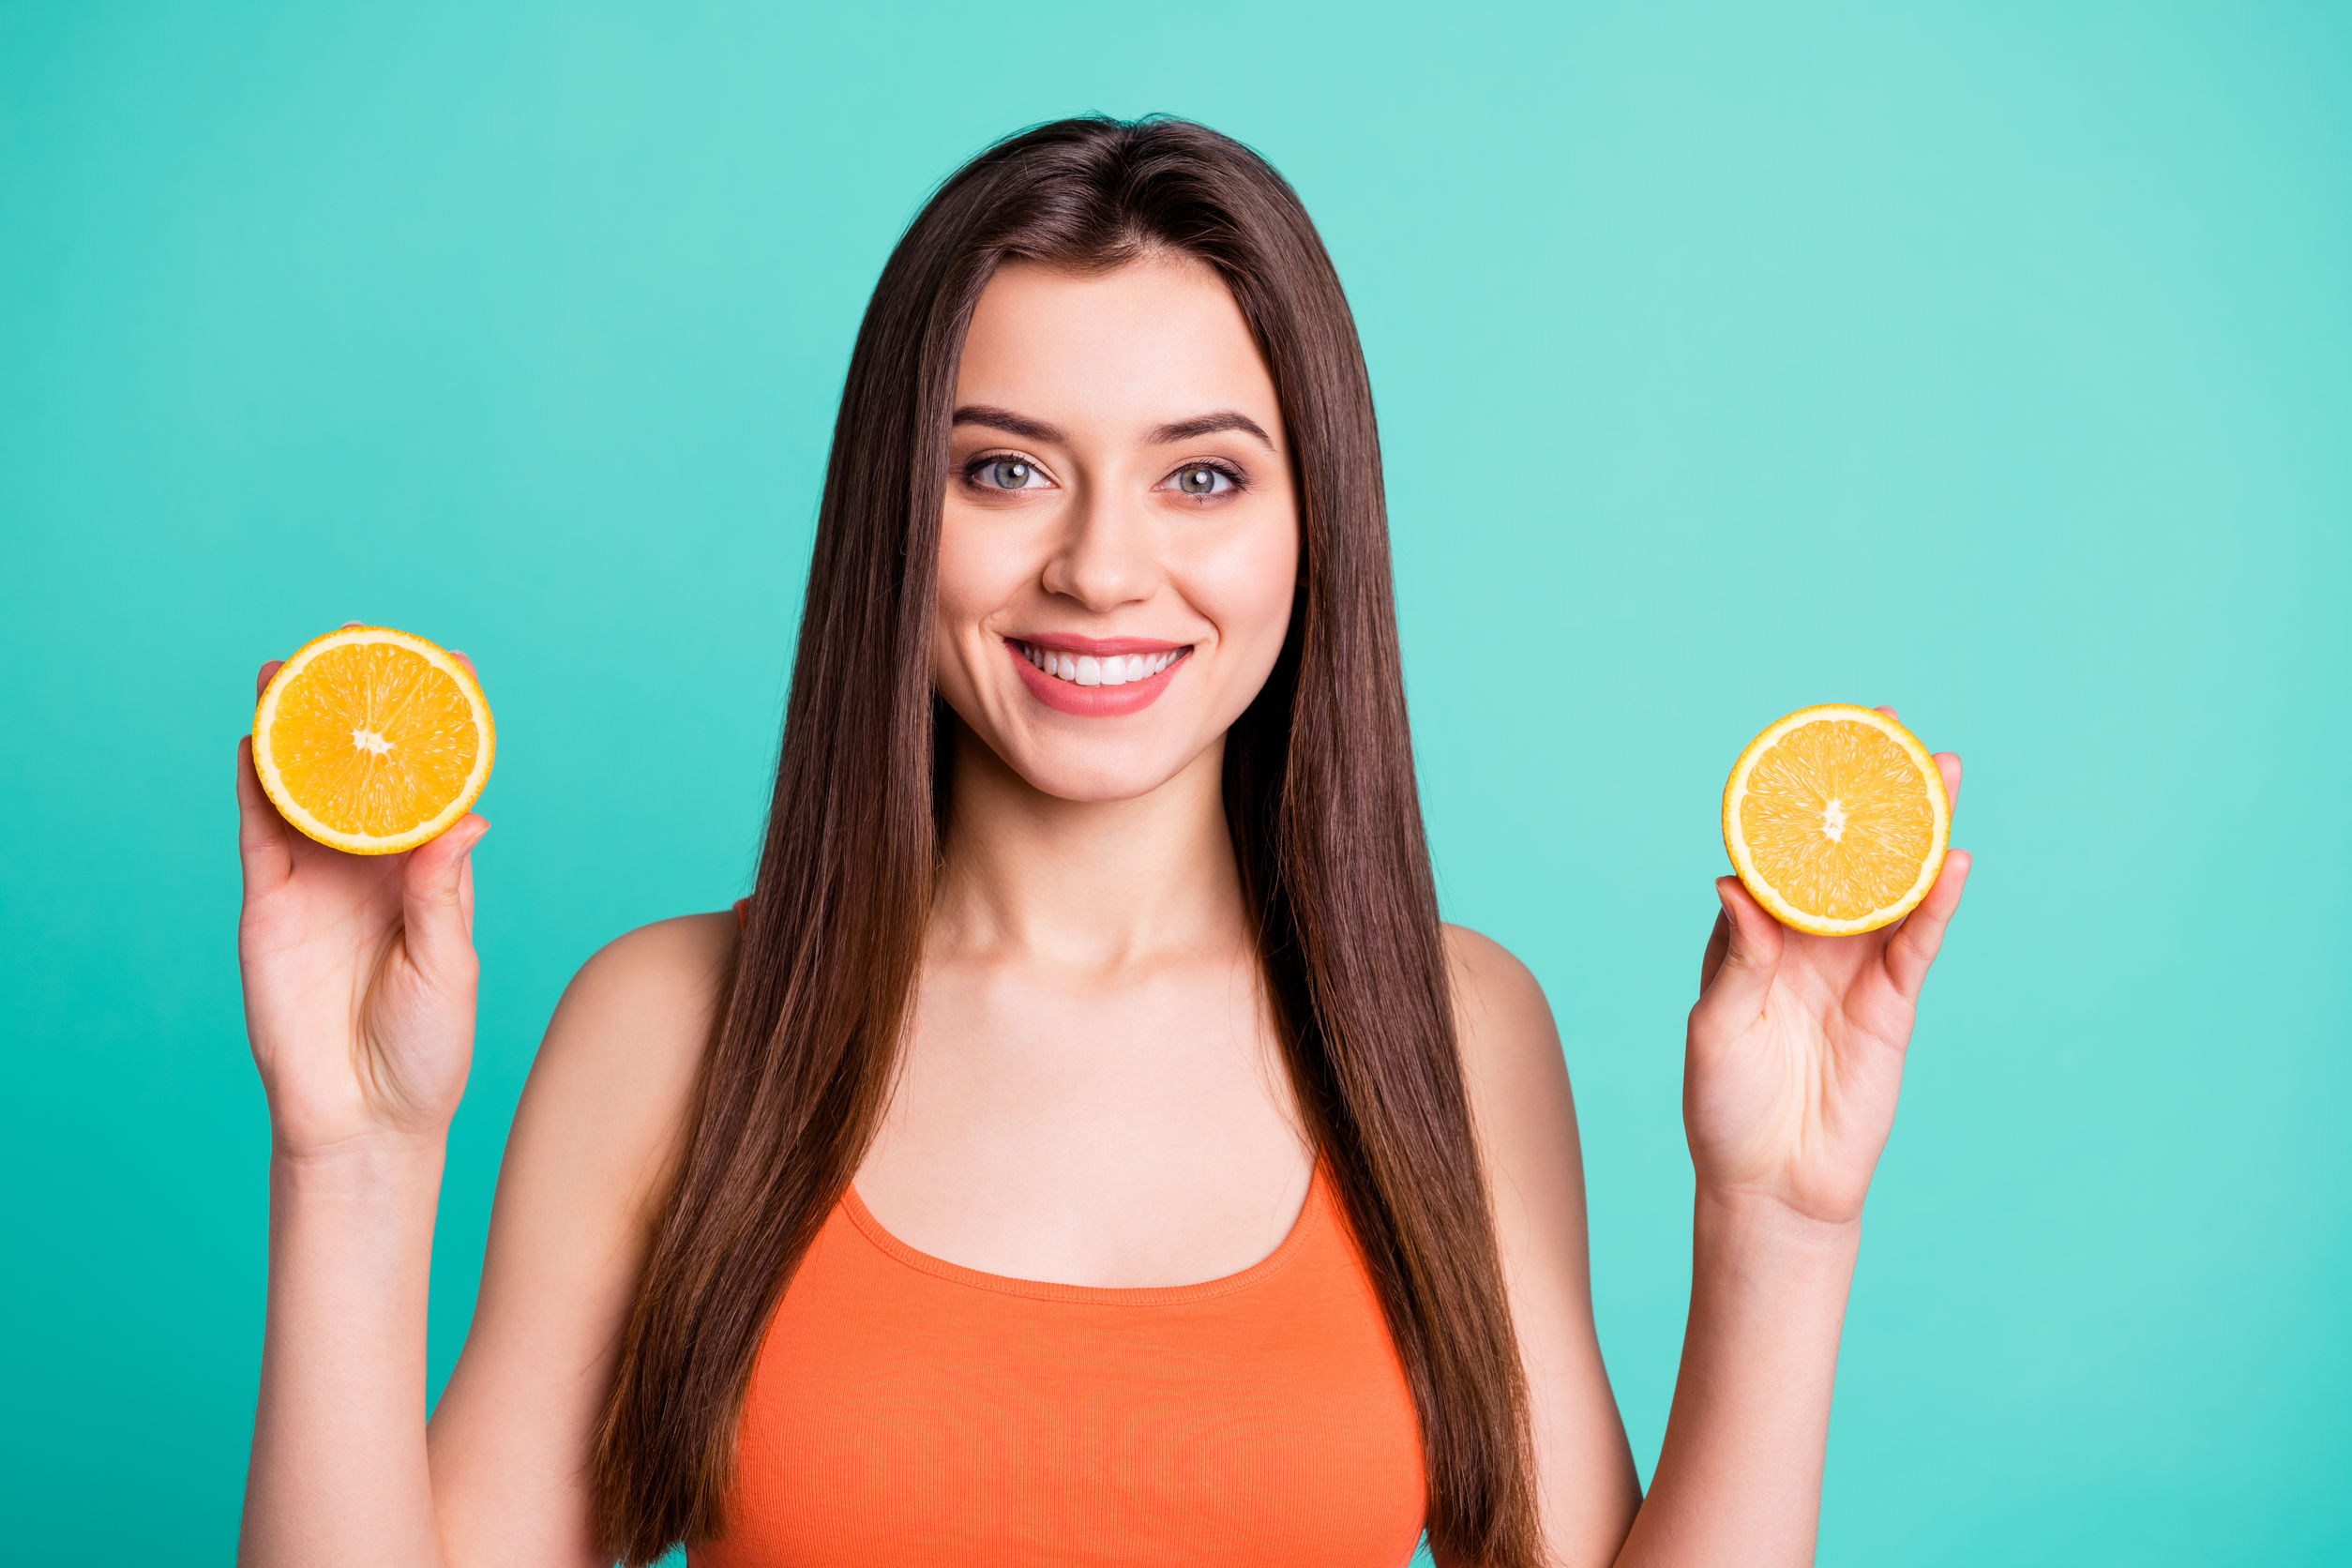 Best Vitamin C Supplements of 2020: The ultimate guide